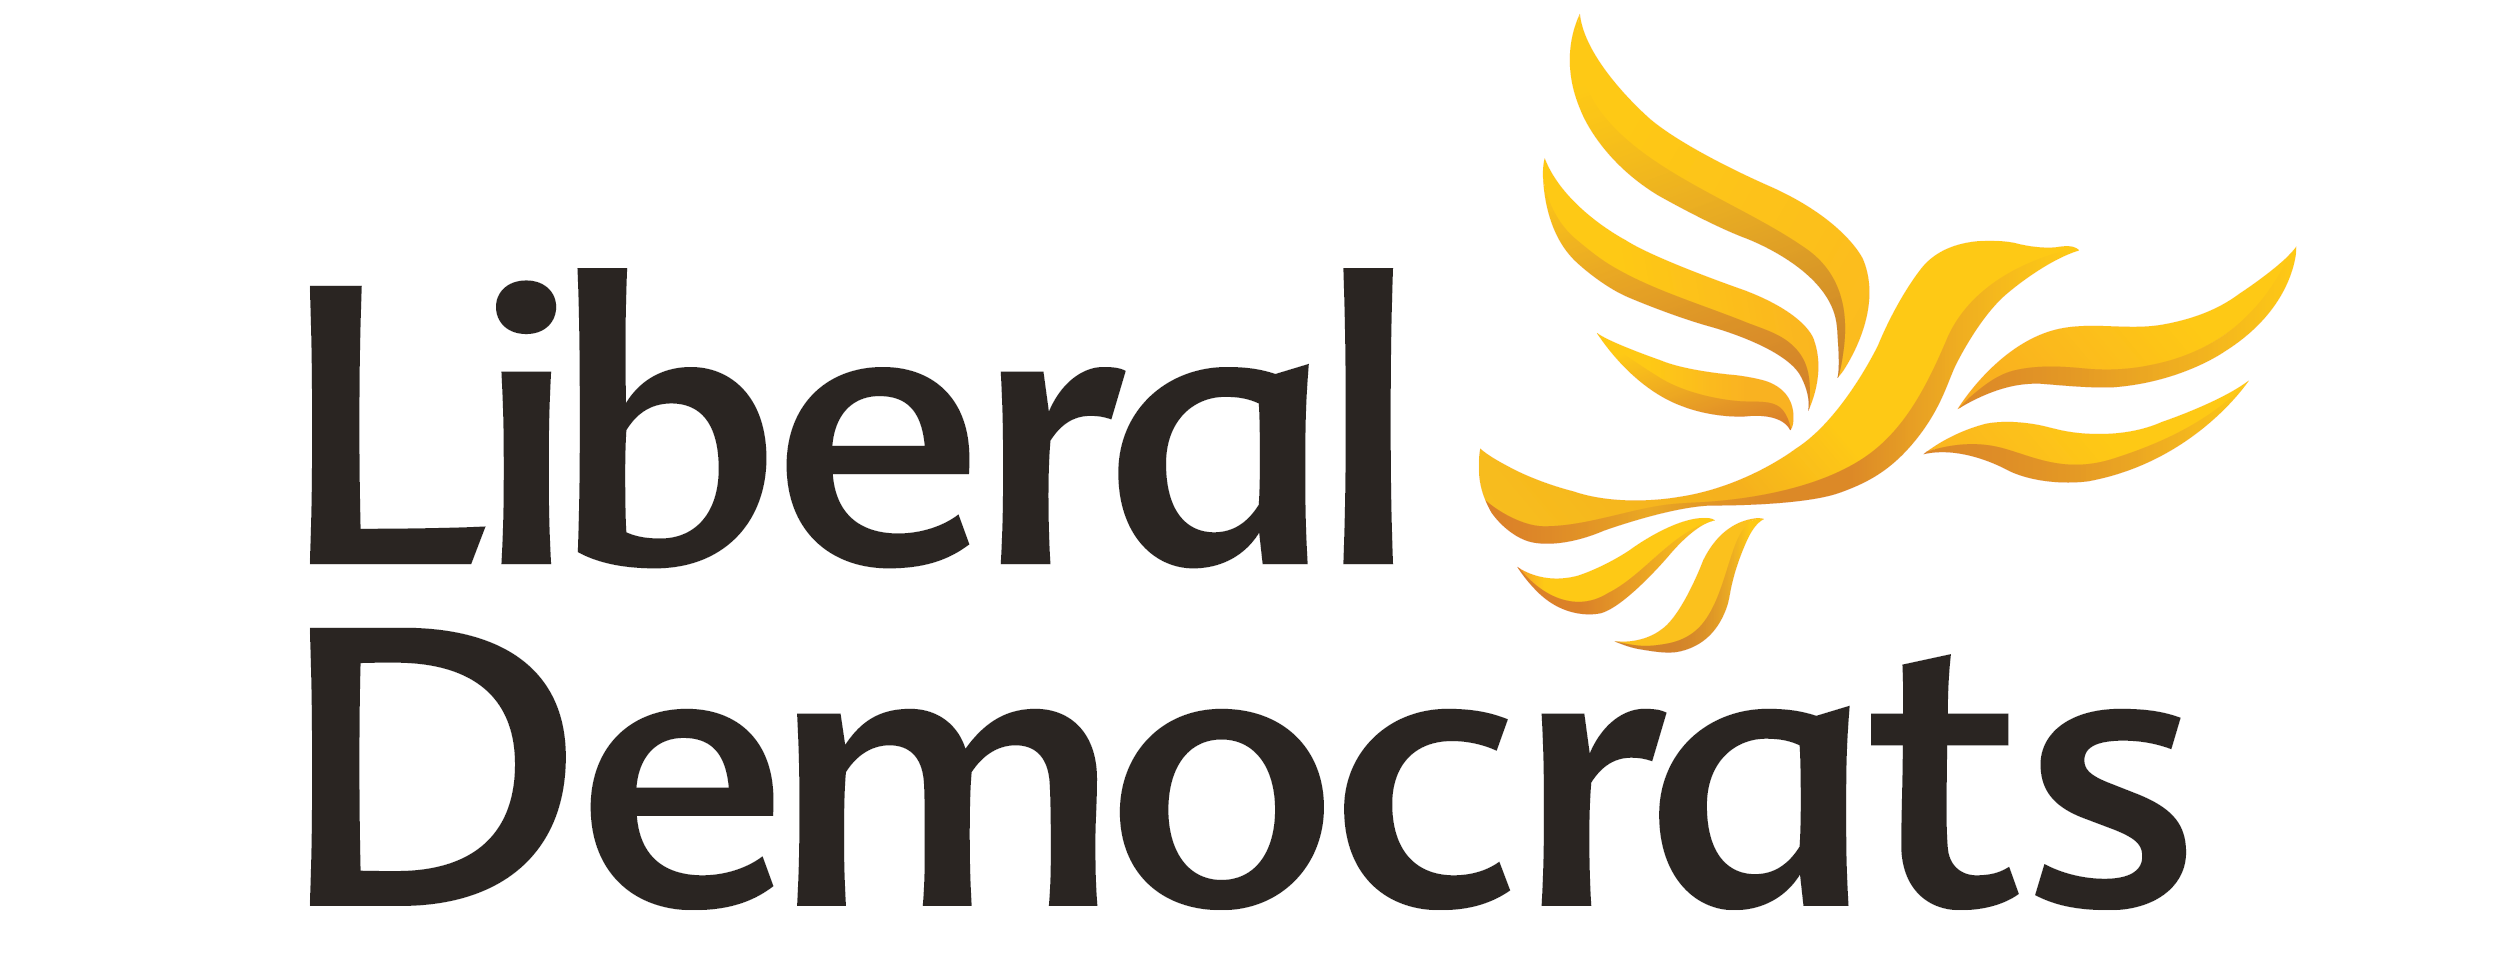 North East Derbyshire & Bolsover District Liberal Democrats